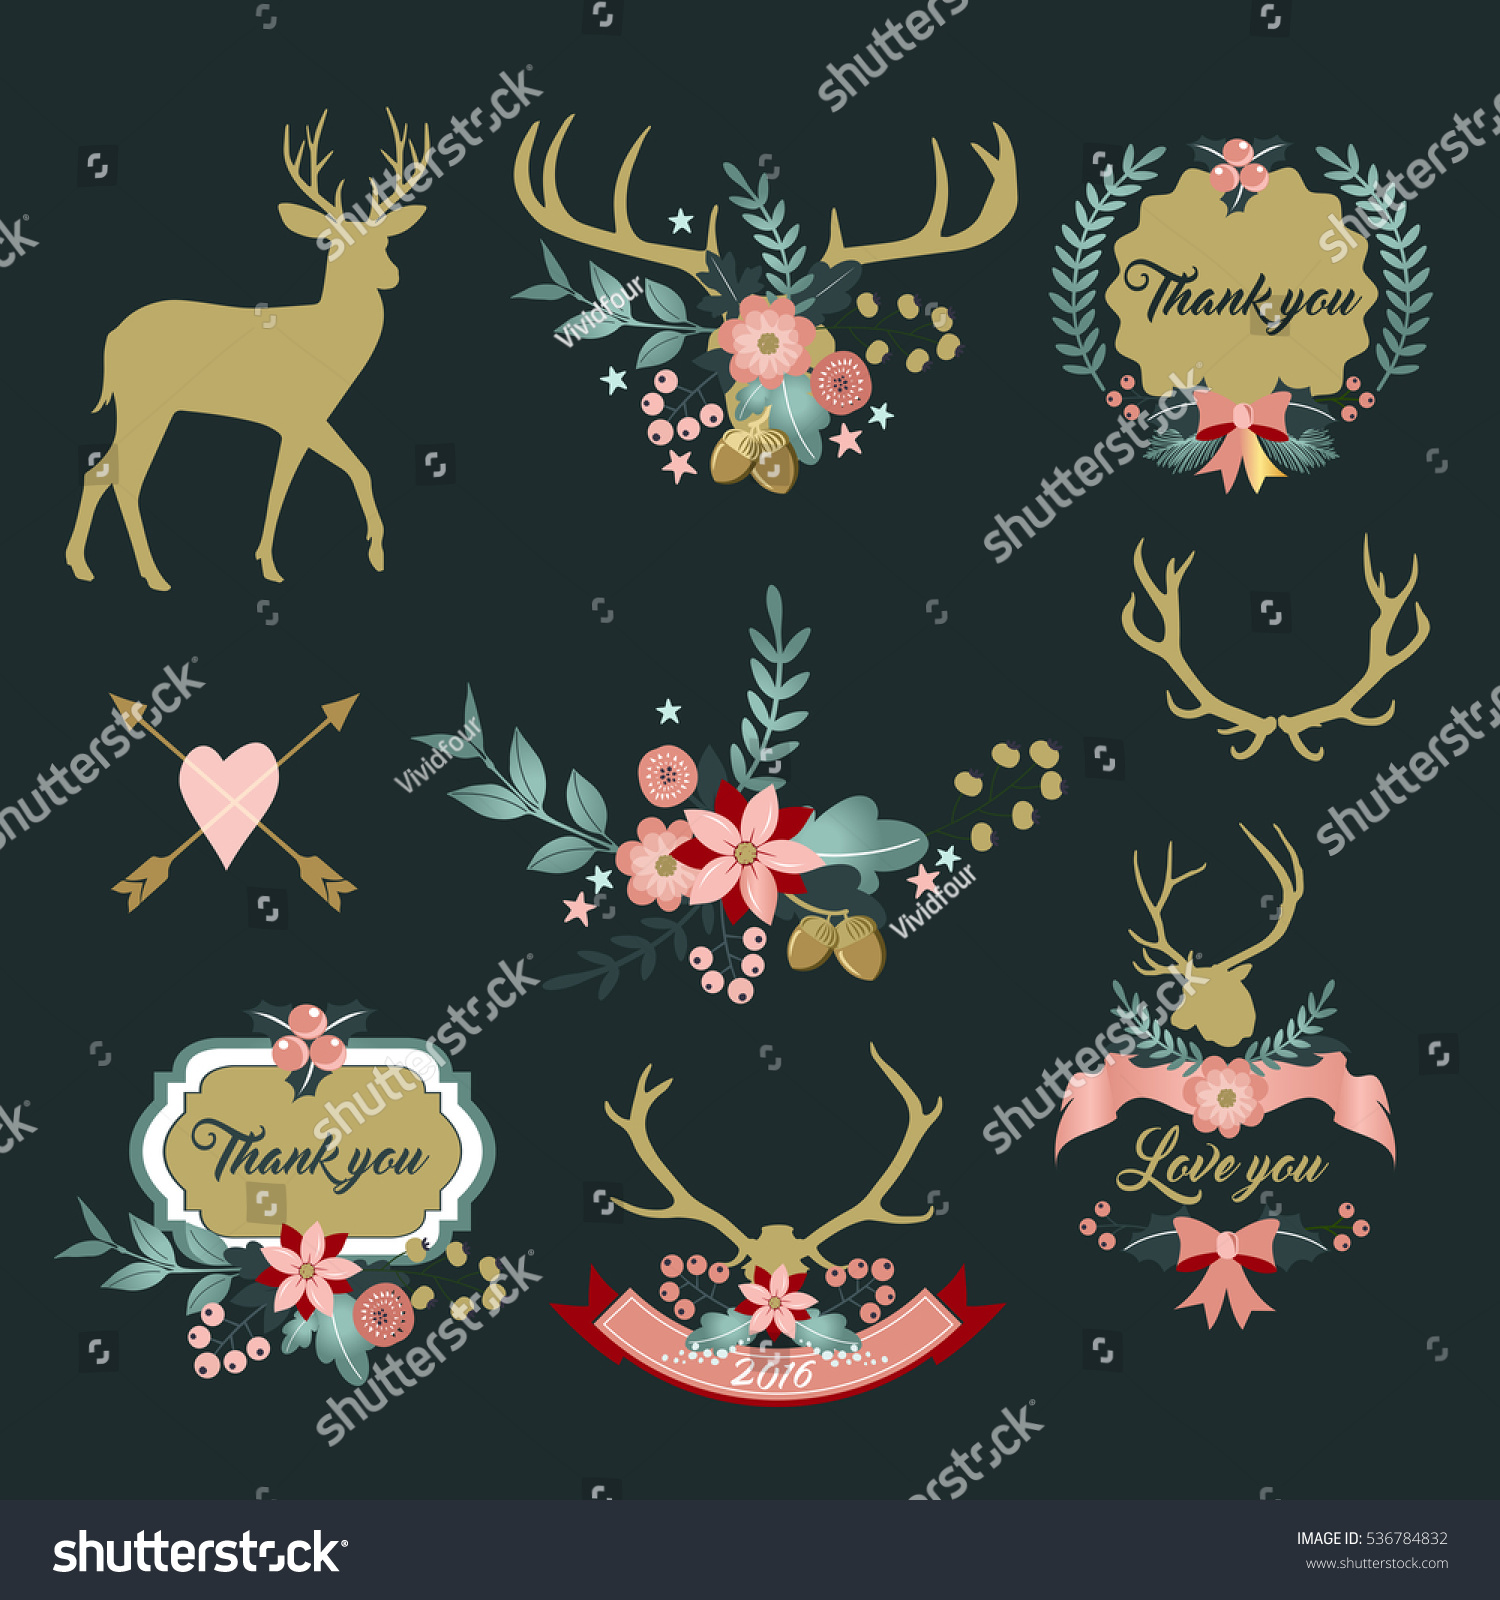 hight resolution of deer antlers with flowers deer and floral clipart thank you clipart love you